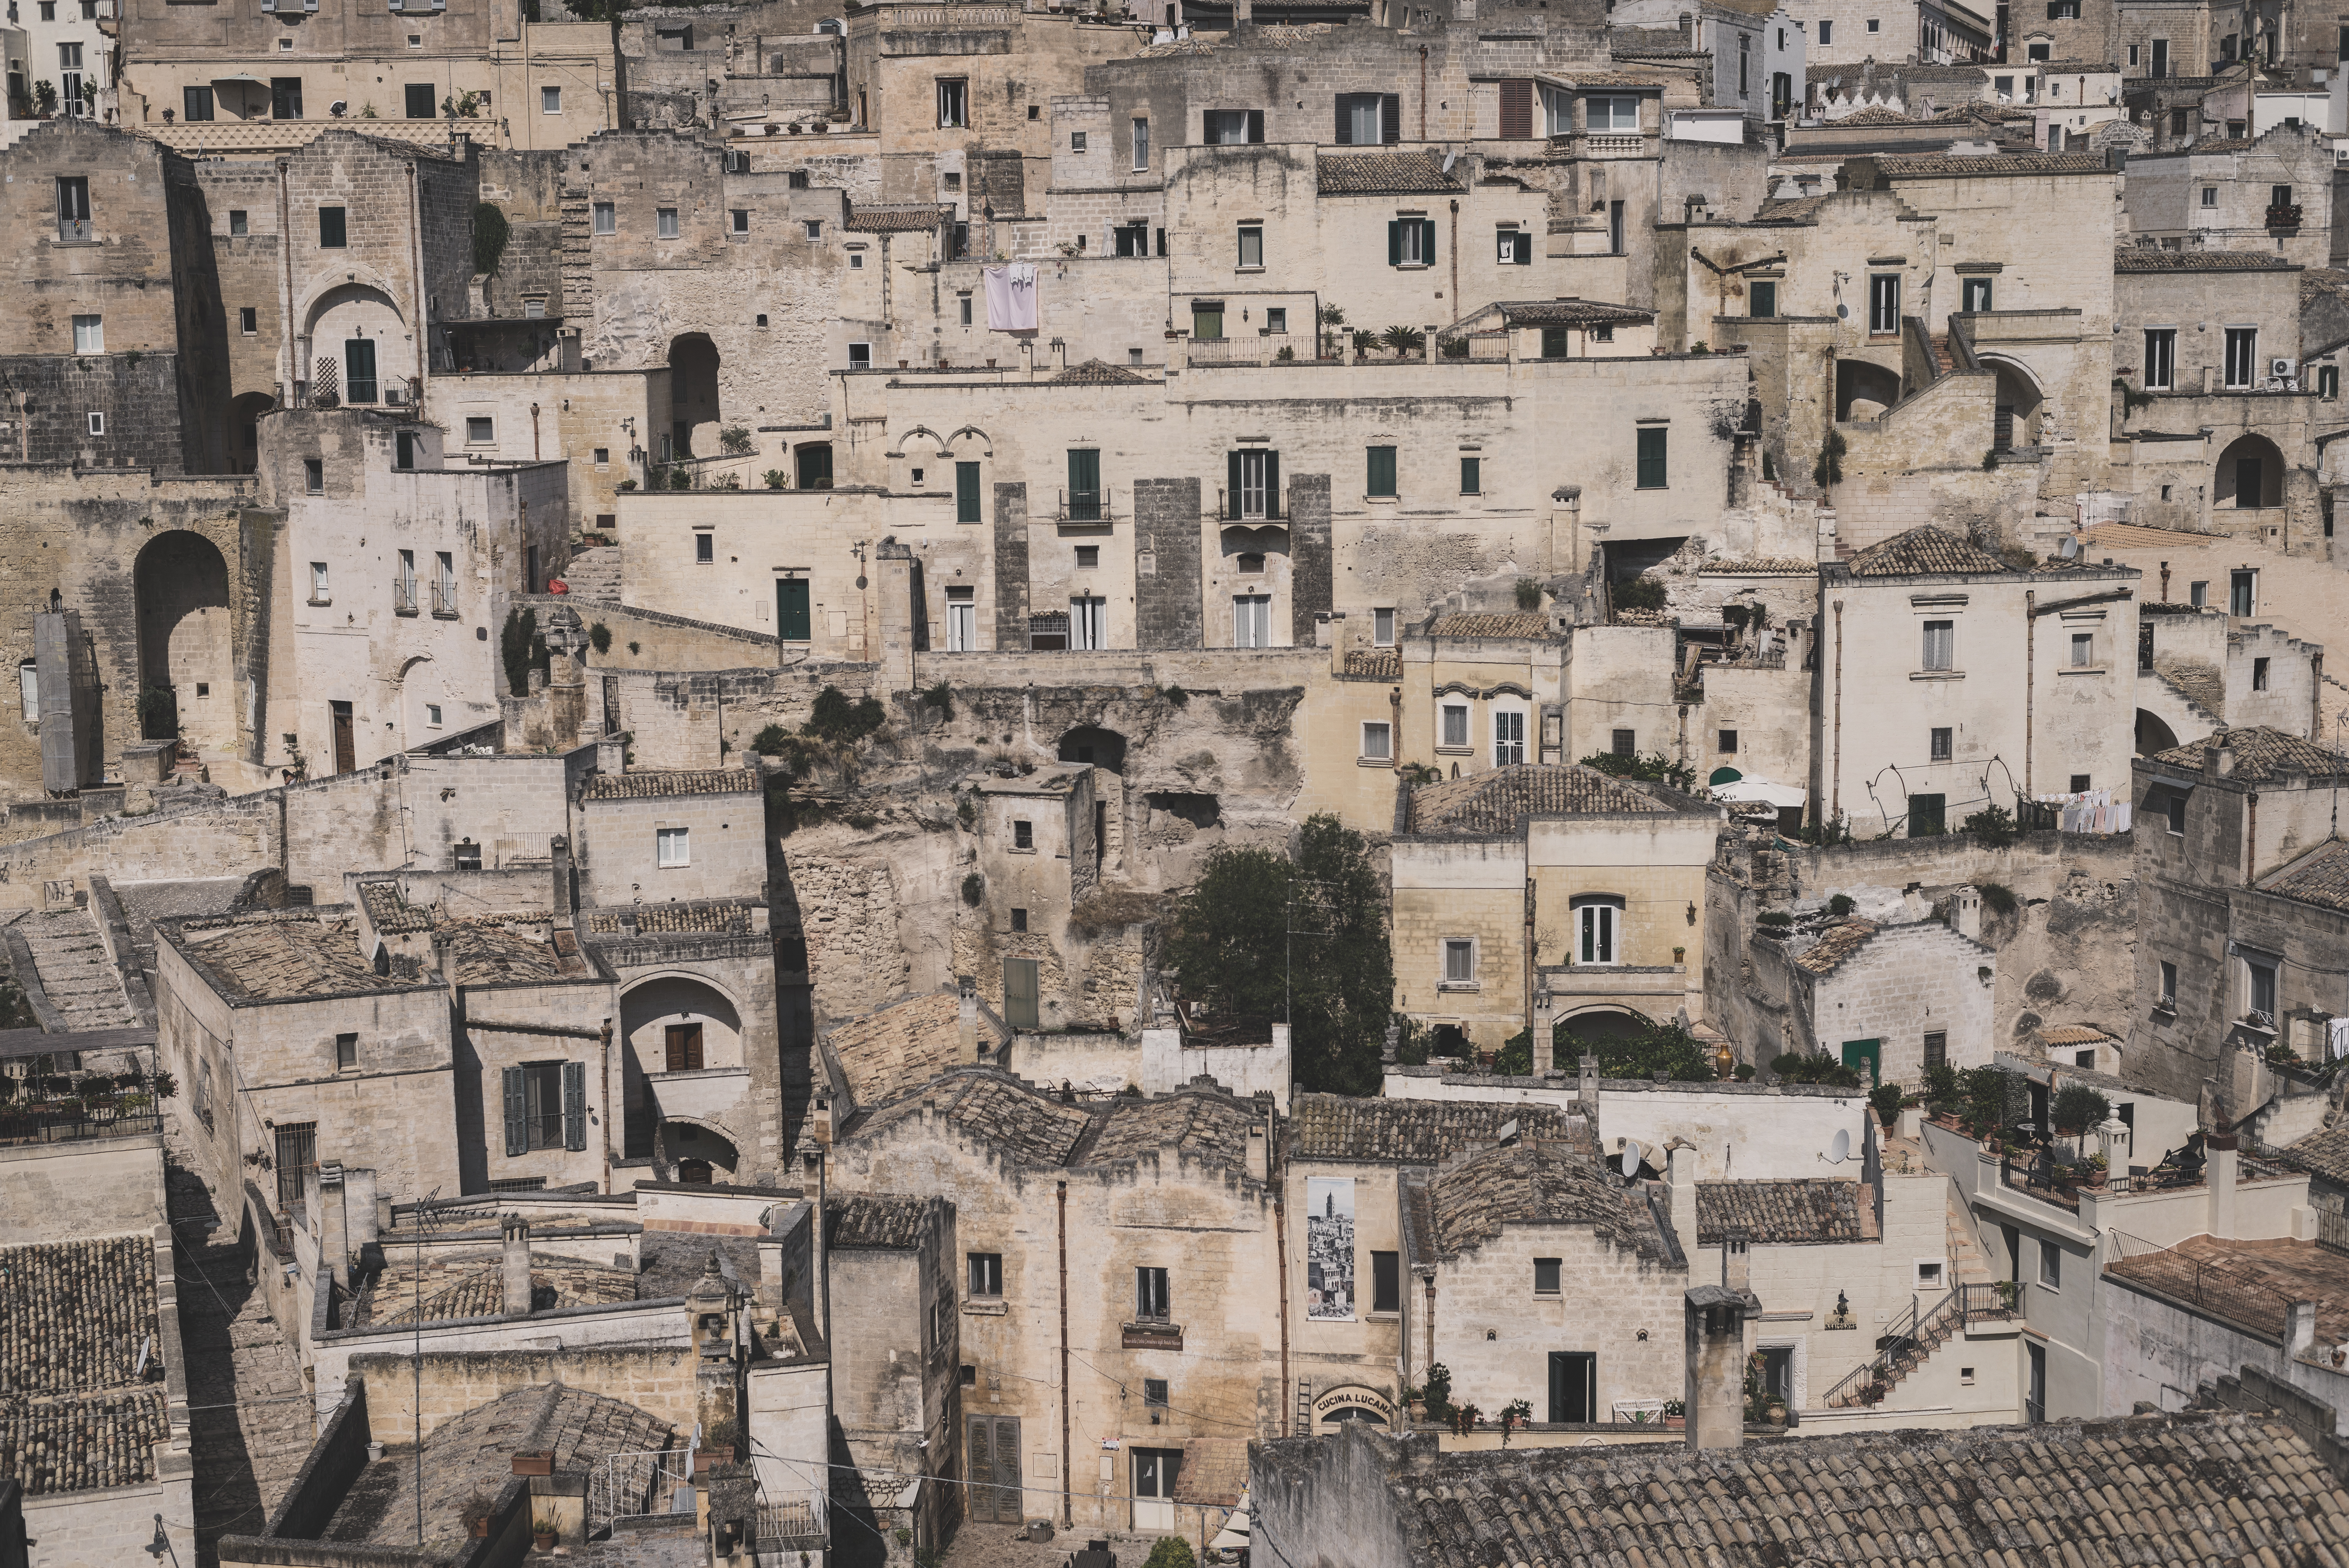 Holiday in Italy, matera, travel photography